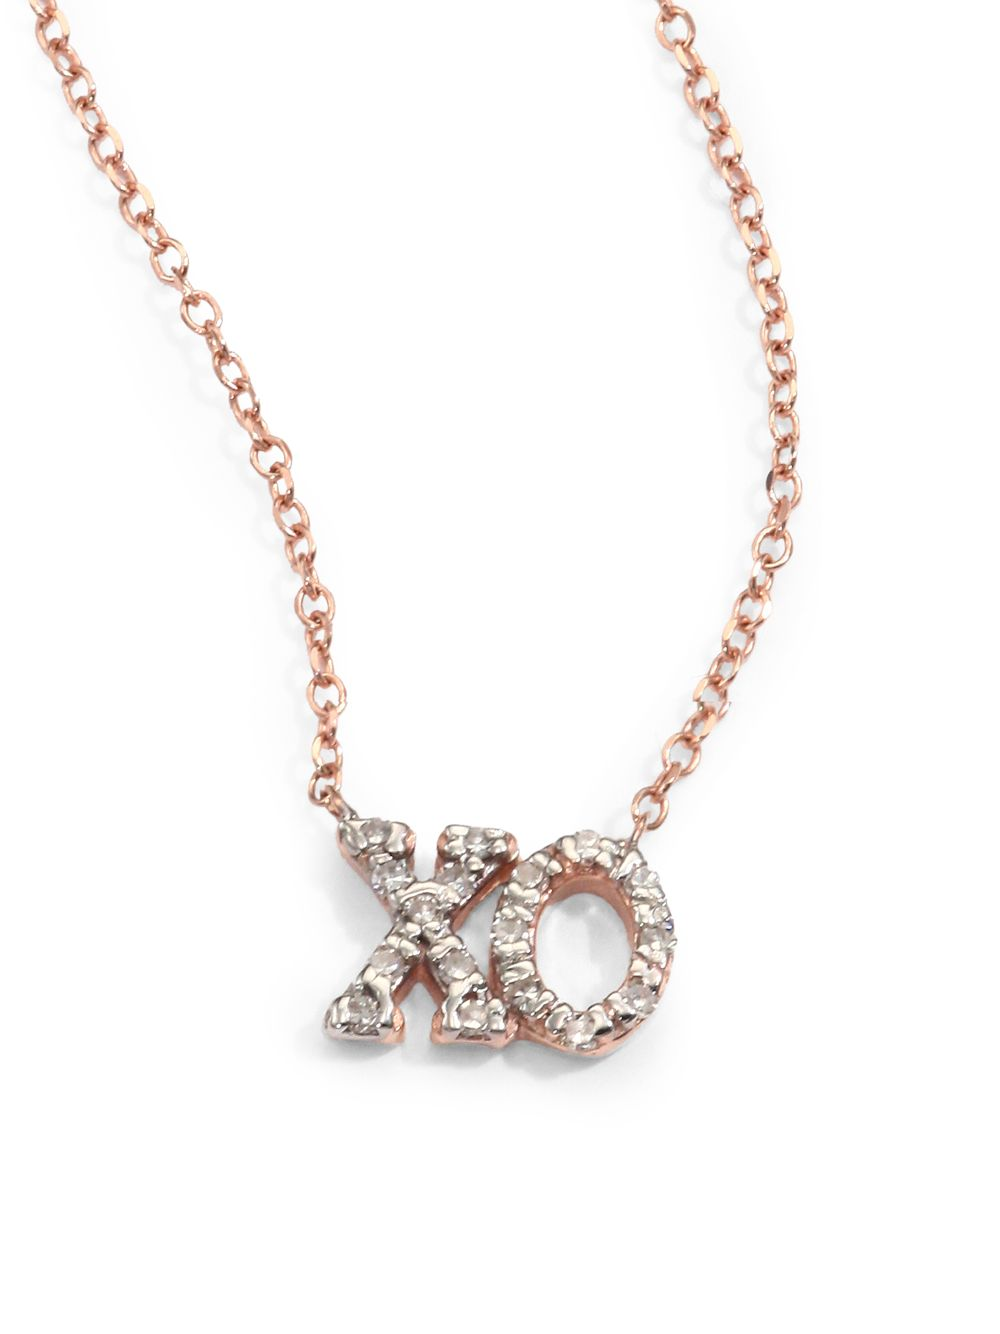 kc designs and 14k gold xo necklace in gold